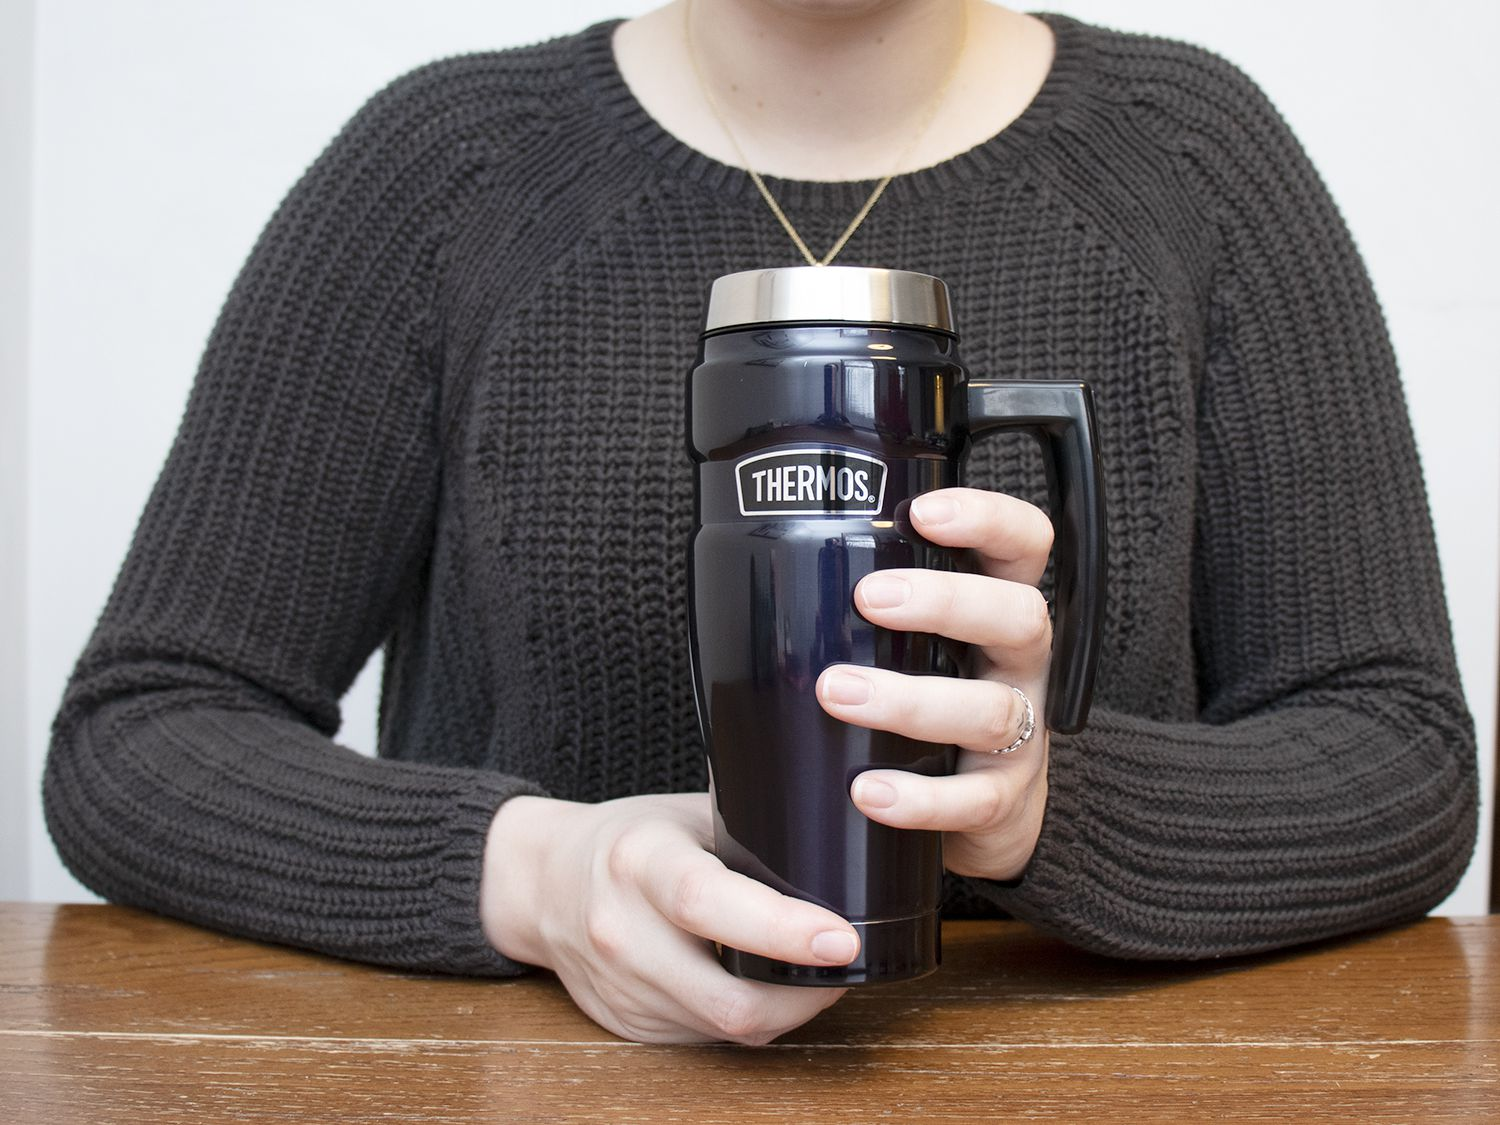 Thermos Stainless King Travel Mug Review Worth It